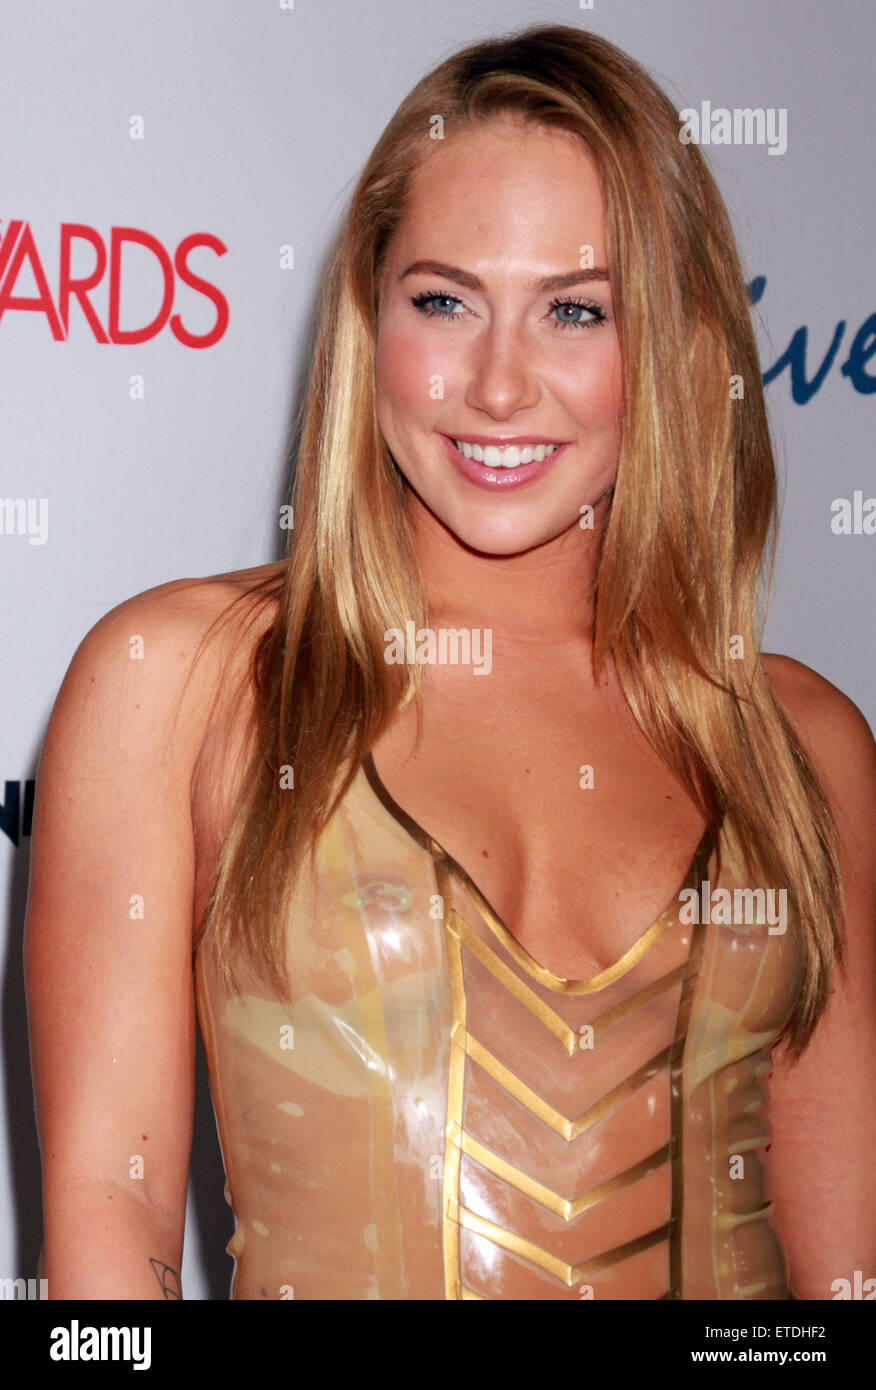 Discussion on this topic: April Bowlby, carter-cruise/